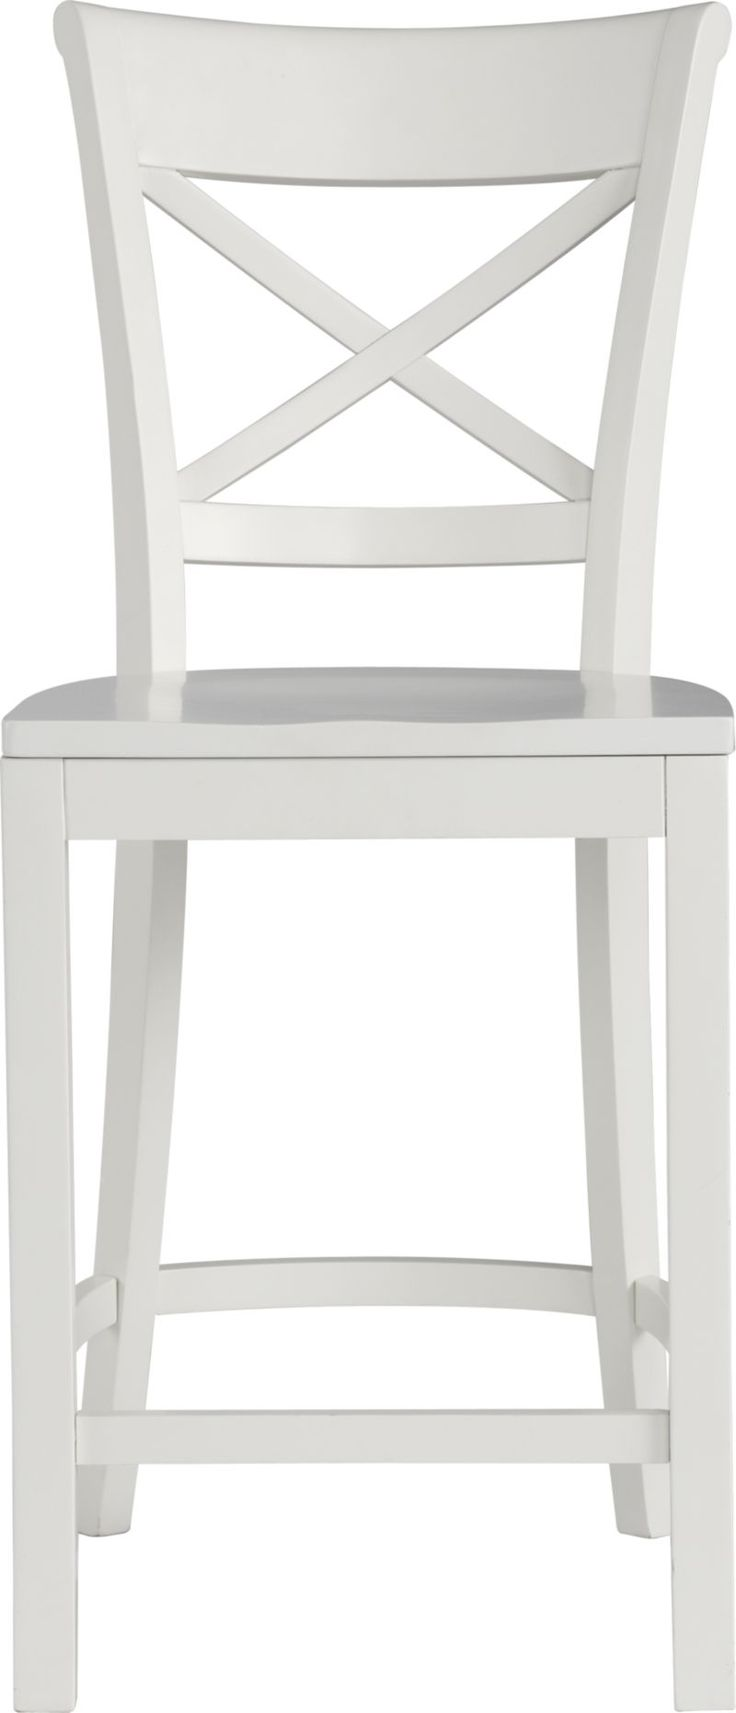 Vintner 24  White Counter Stool | Crate and Barrel  sc 1 st  Pinterest & 36 best Counter Stools images on Pinterest | Counter stools ... islam-shia.org